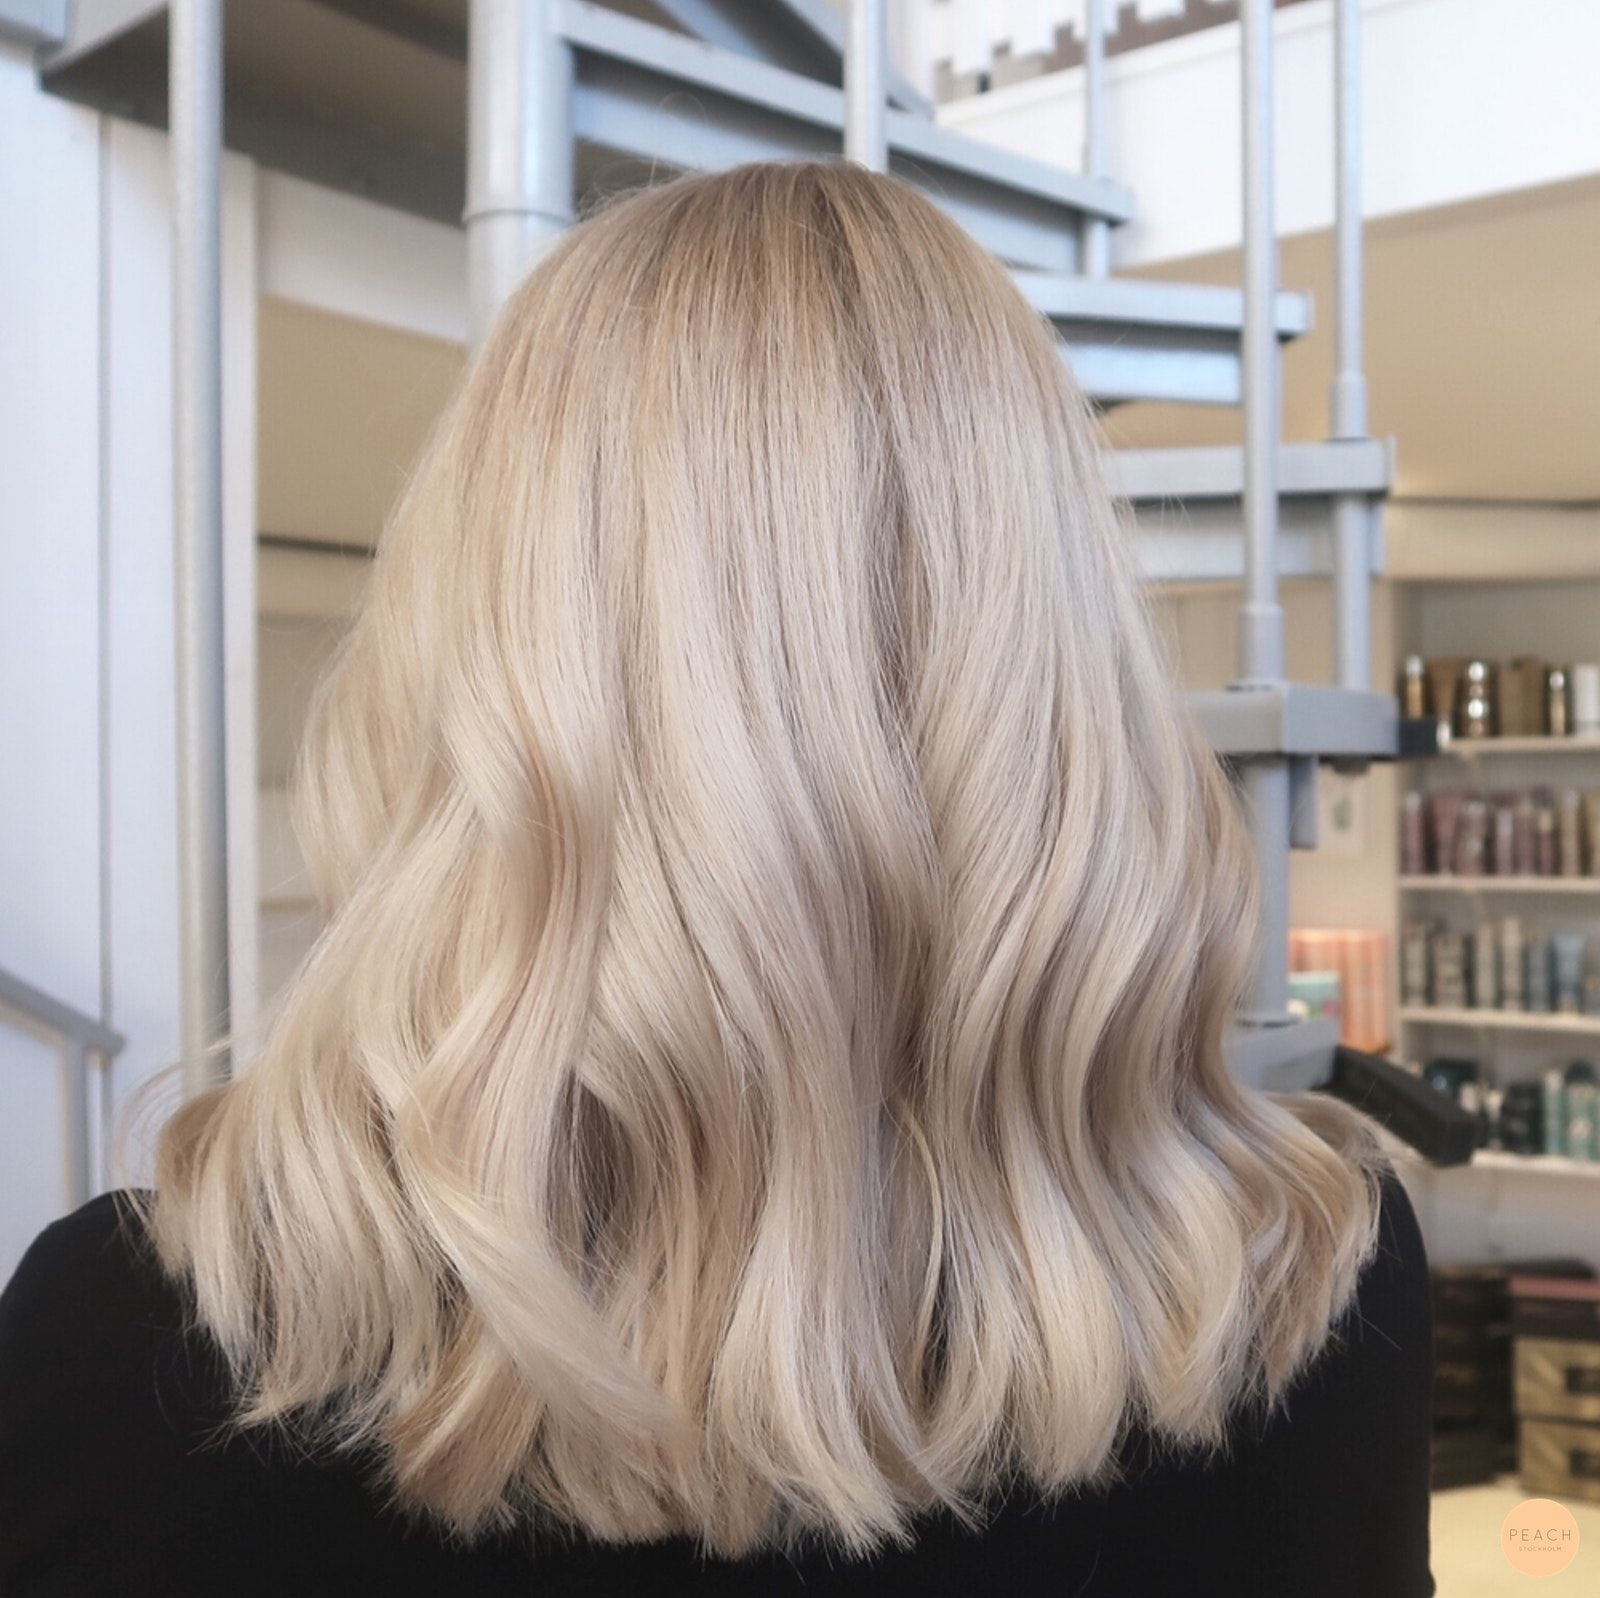 Makeover stockholm - Peach Stockholm #champagneblondehair